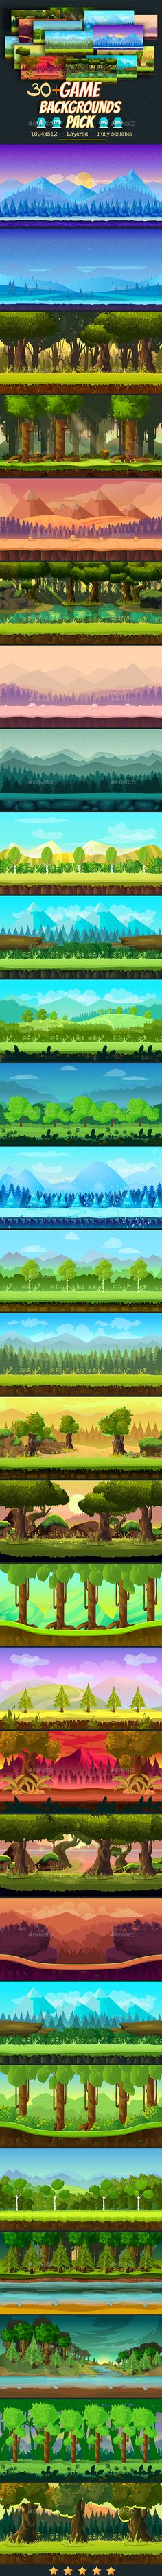 30+ Game Backgrounds Pack 2 EPS AI #parallax #vector • Download ➝ https://graphicriver.net/item/30-game-backgrounds-pack-2/18281323?ref=pxcr